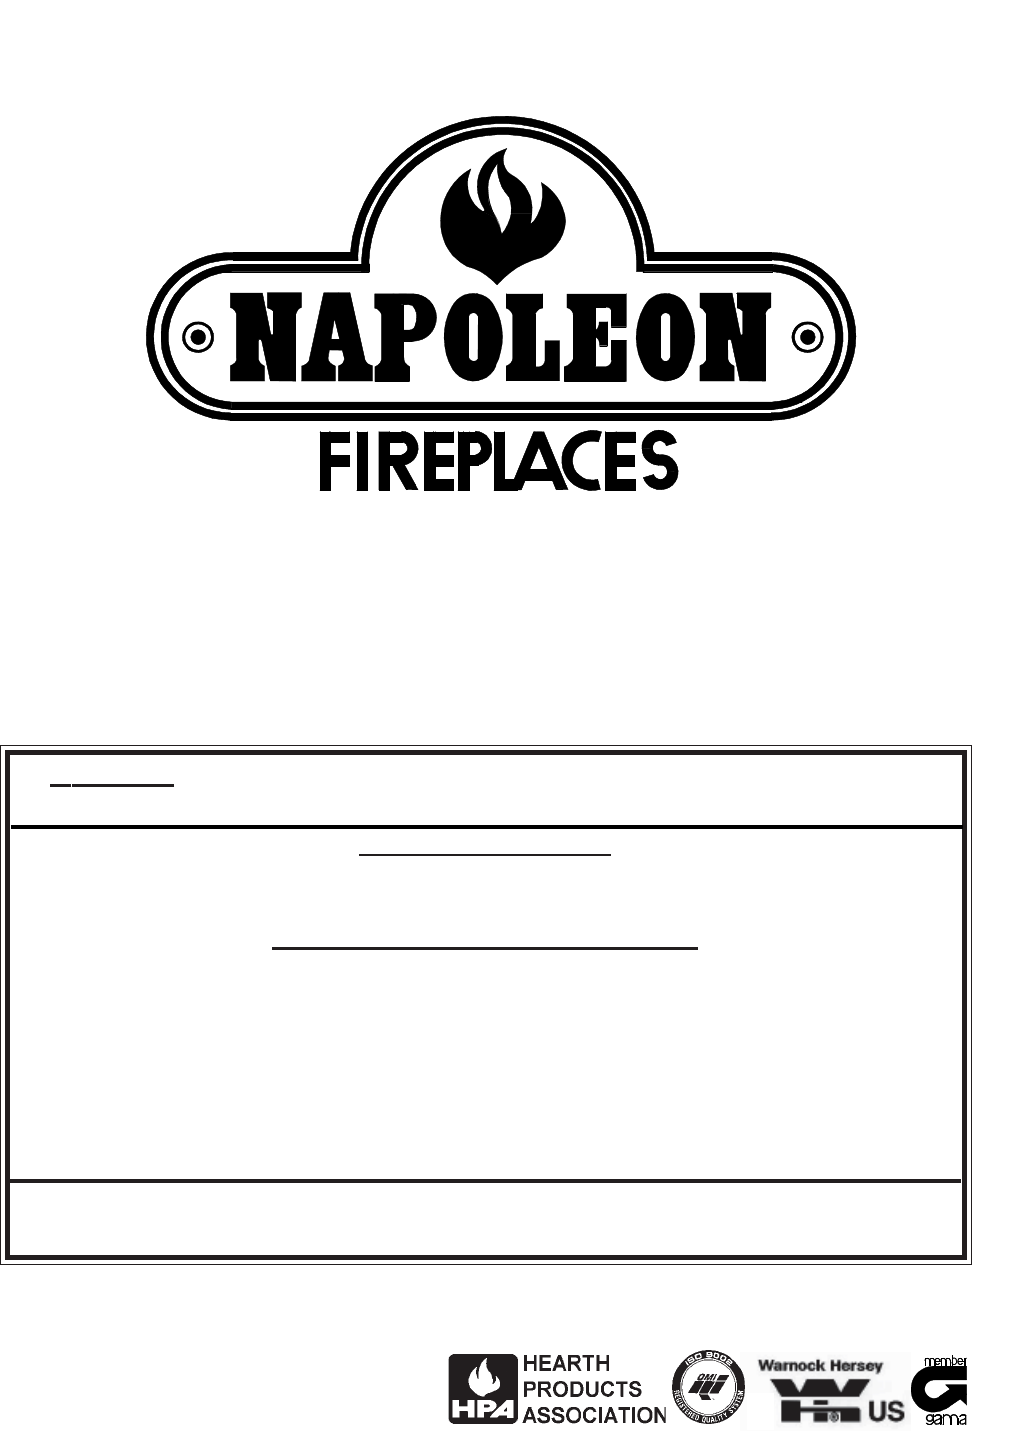 napoleon fireplaces indoor fireplace gvfs60 n user guide manualsonline